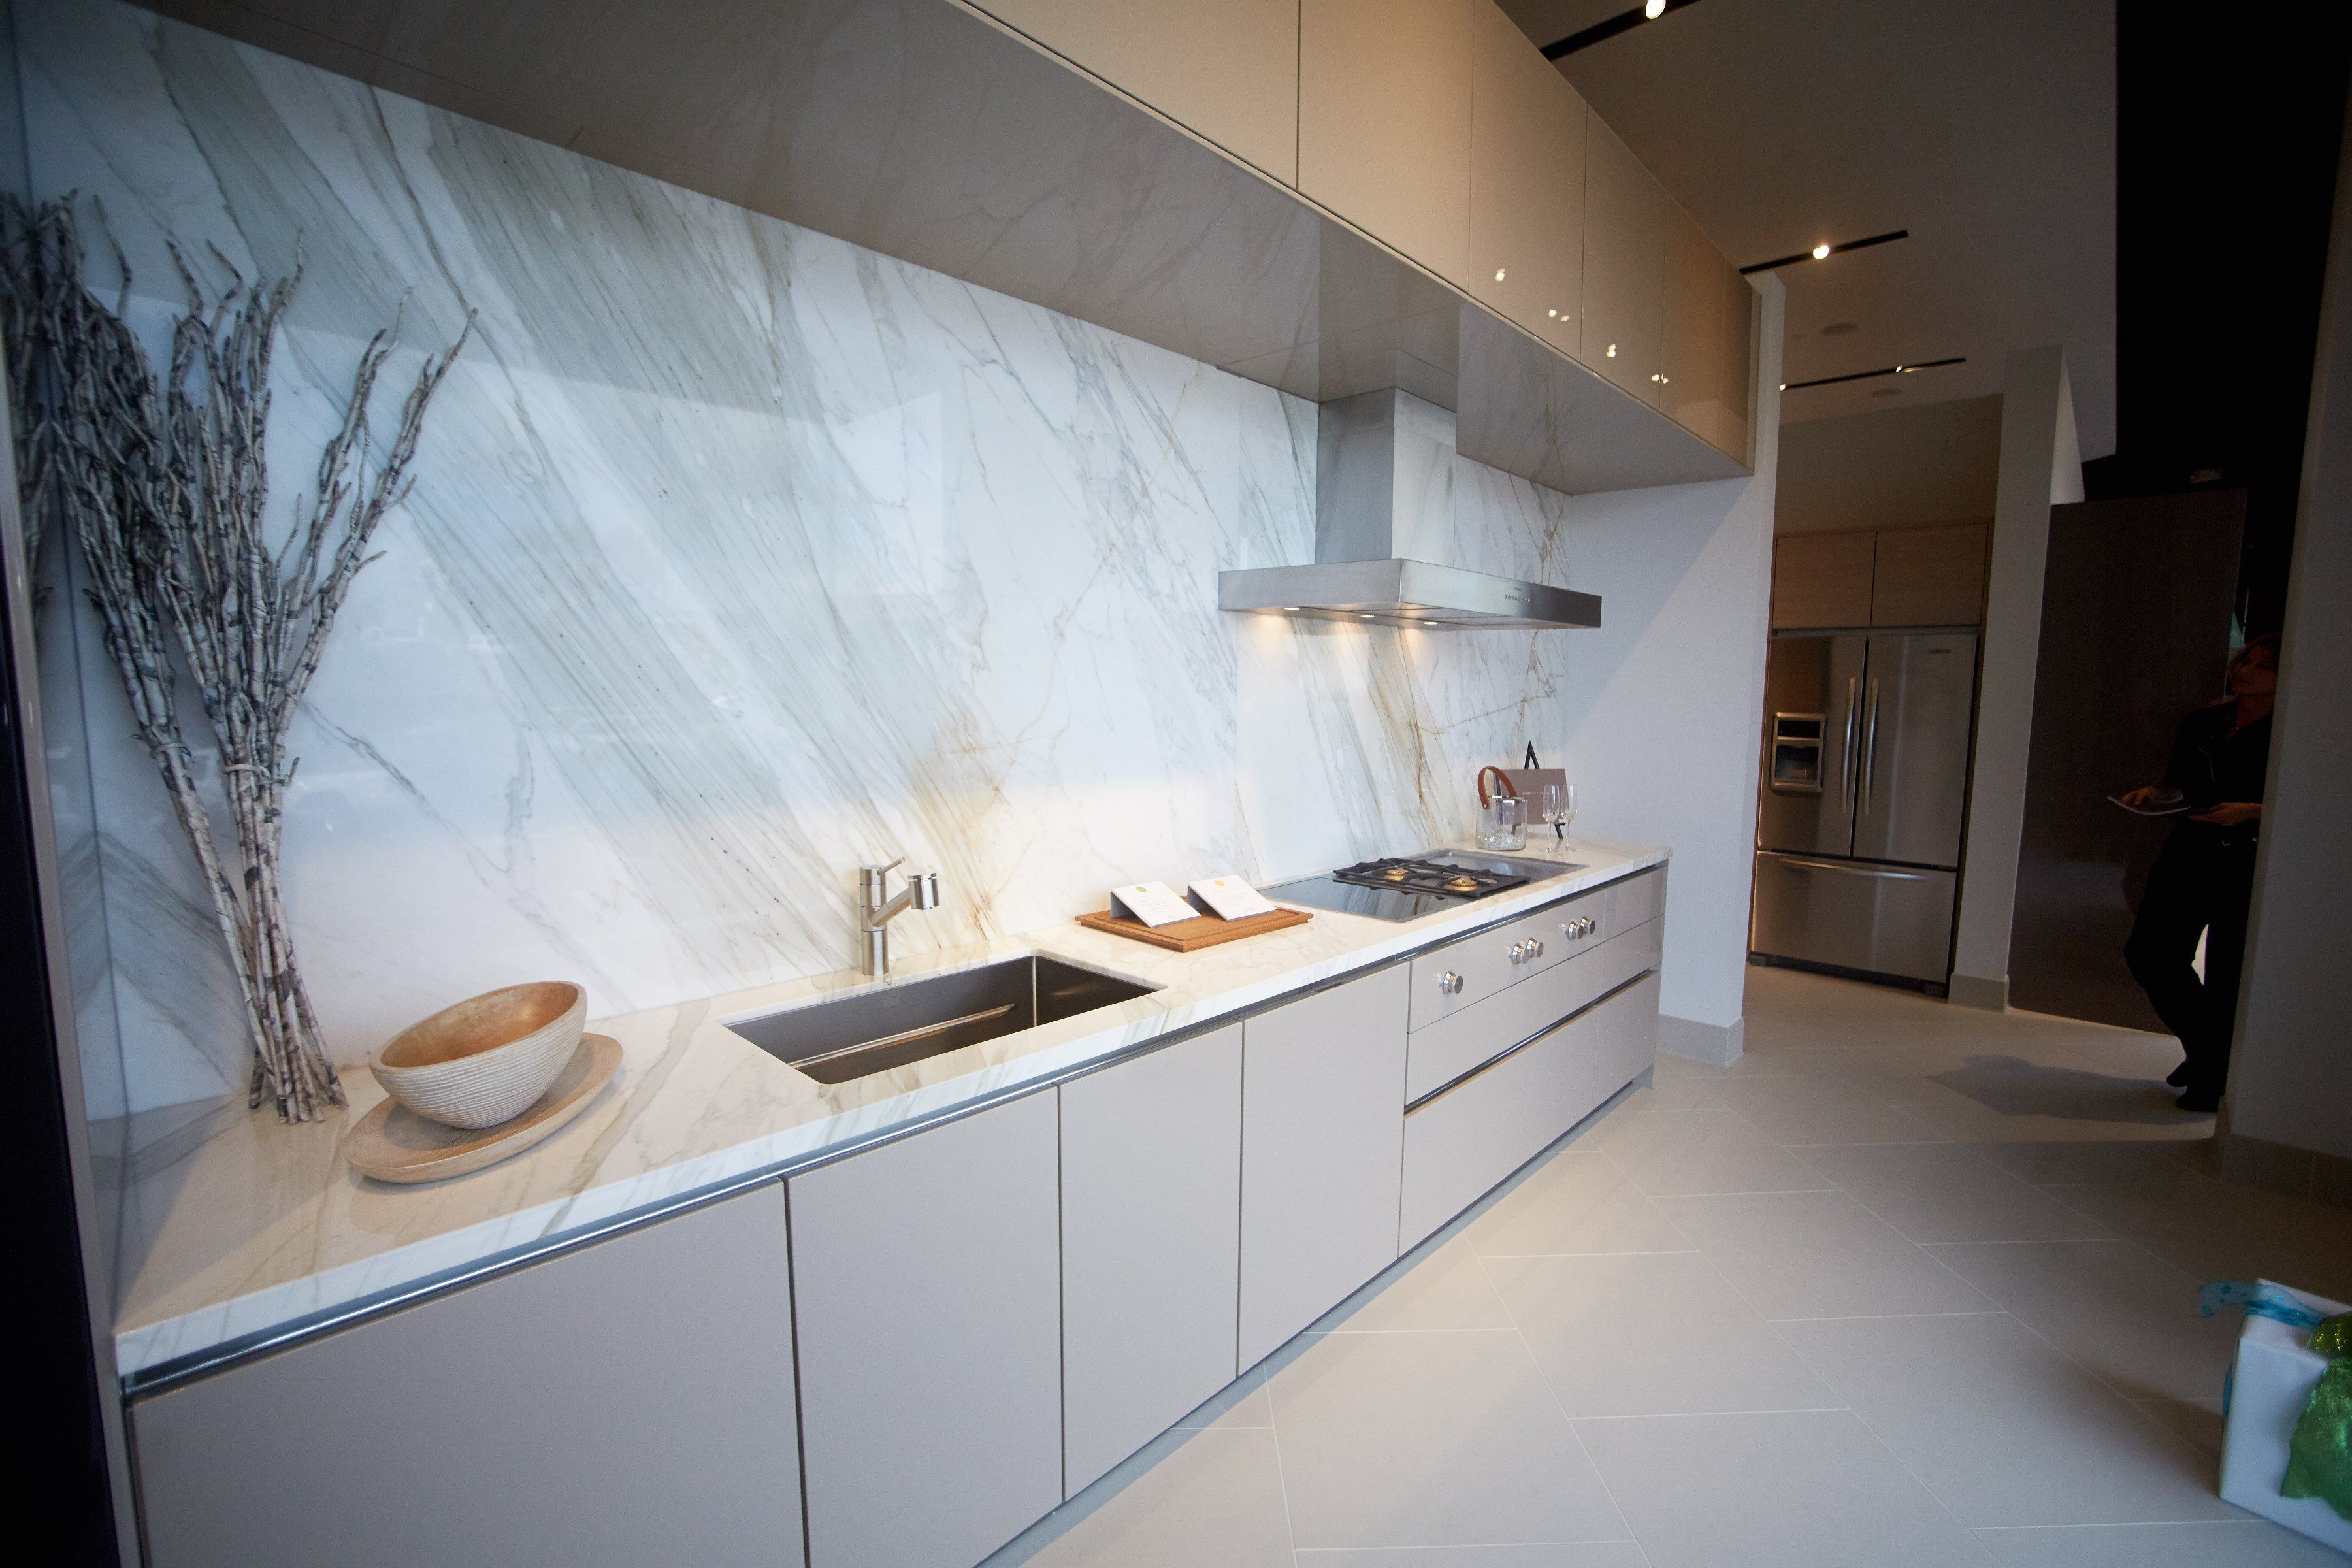 Kitchen design pirch utc pirch san diego pinterest kitchen design and kitchens - Kitchen designer san diego ...